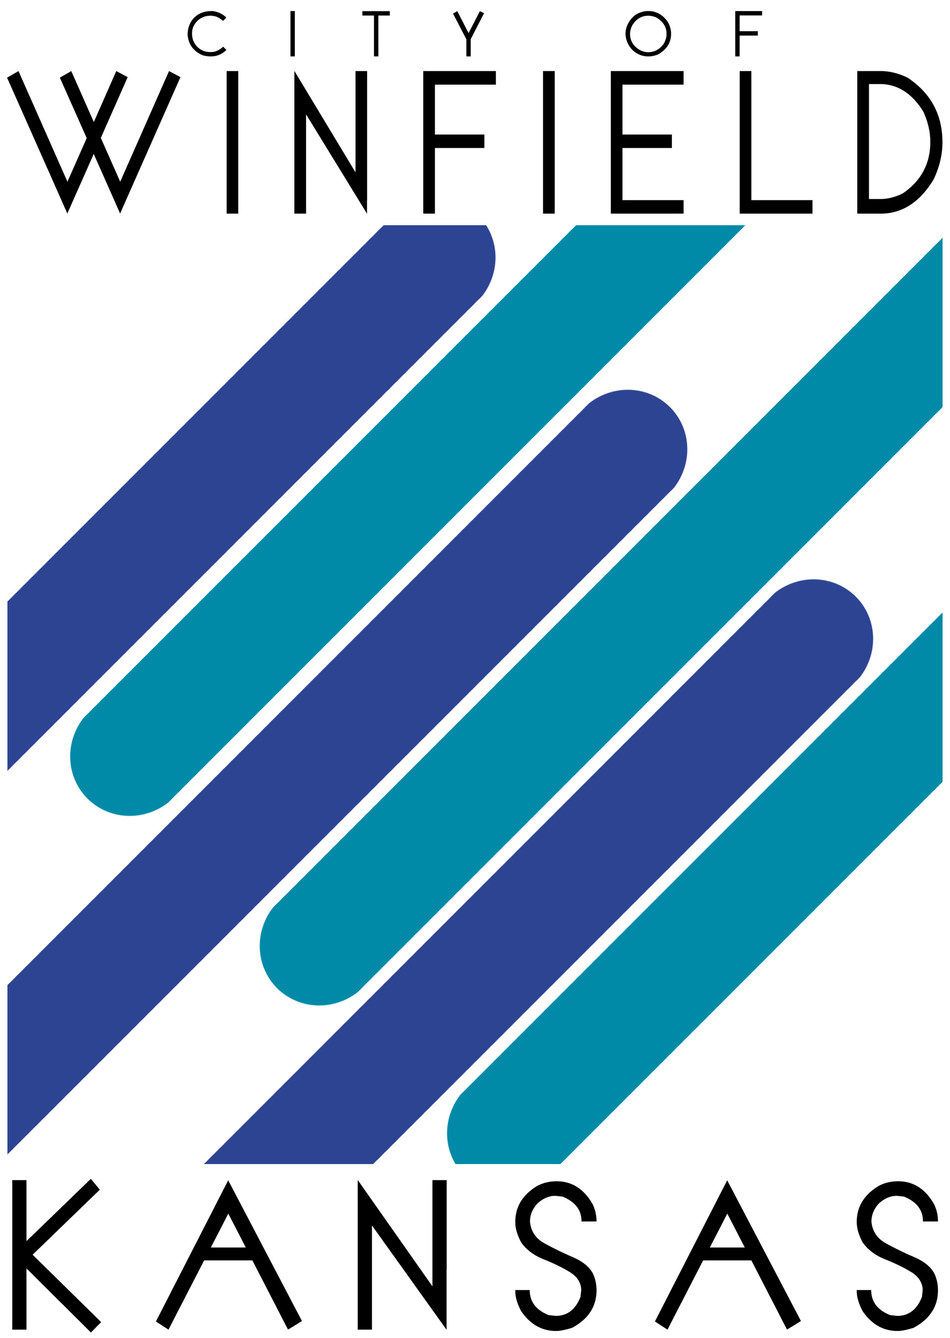 City of Winfield, Kansas logo